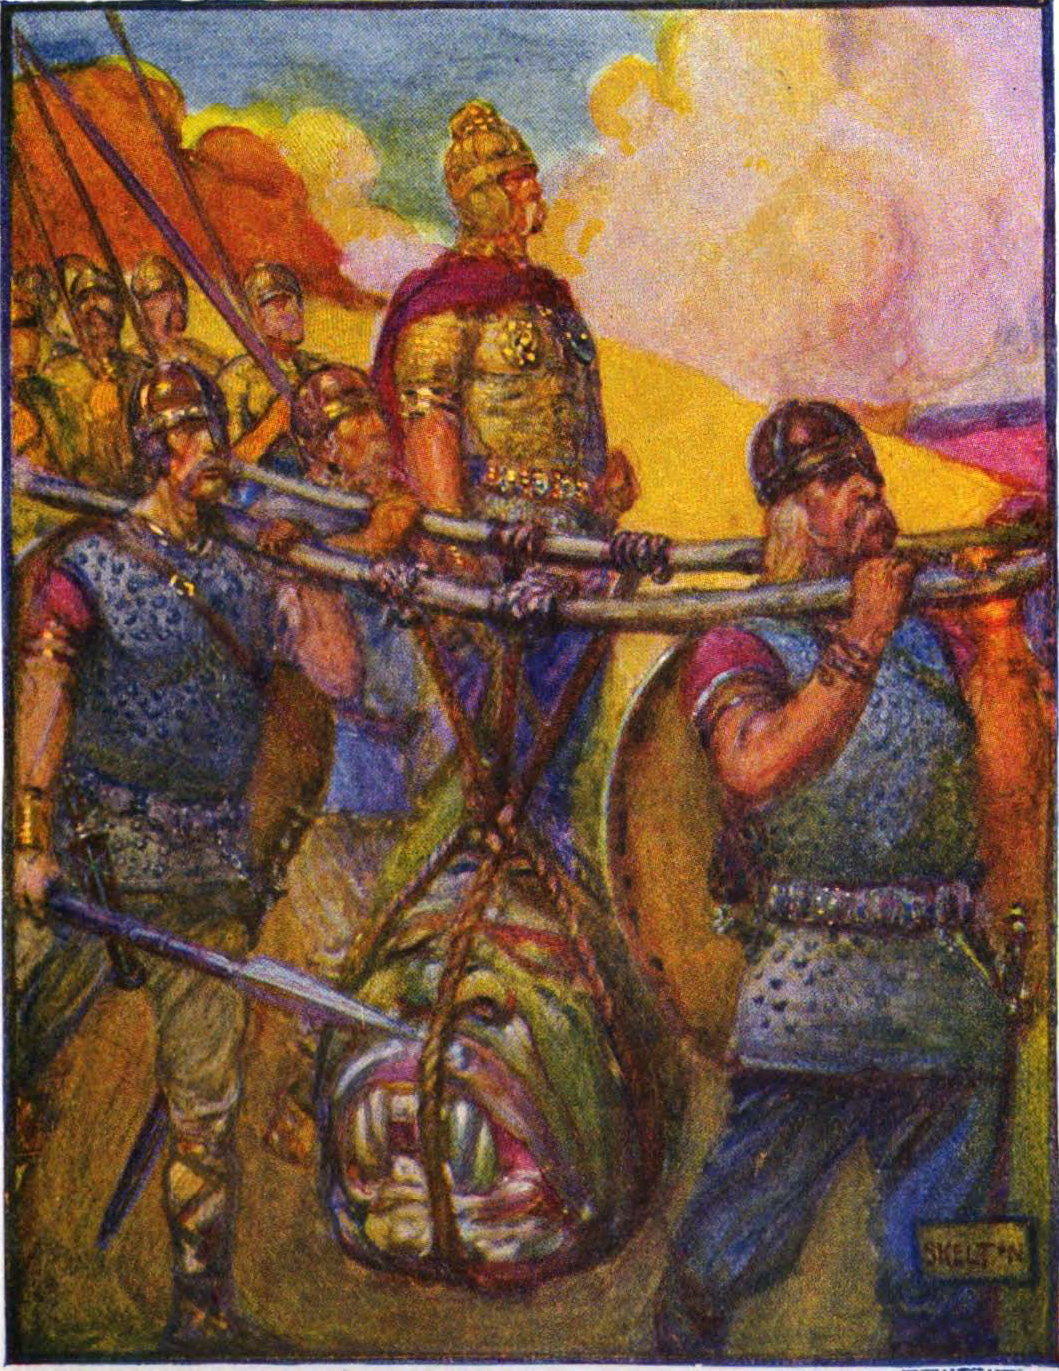 an analysis of christian elements in the epic of beowulf Professor awesome talks about the enormously complex issue of the date of beowulf and what that tells us about christian and pagan elements in the poem.